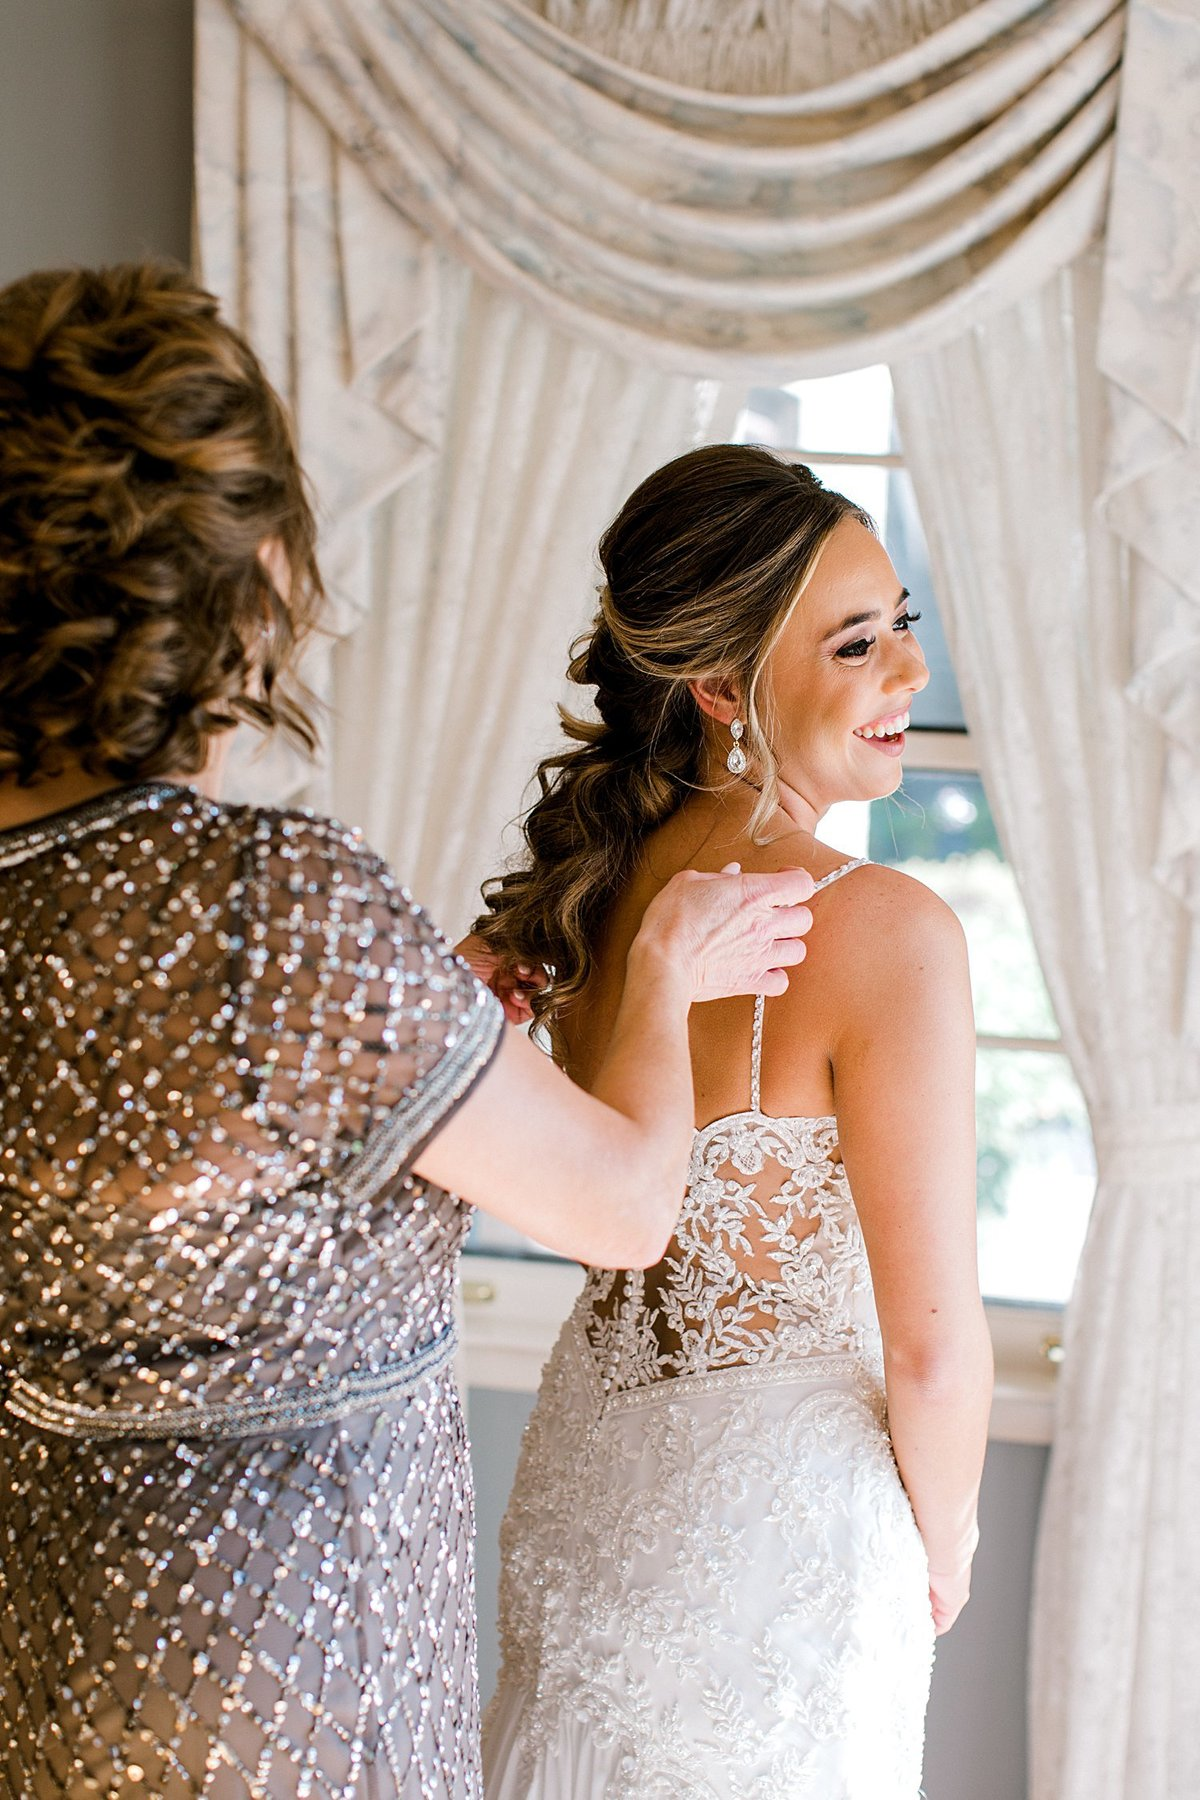 mother of bride getting bride into wedding dress